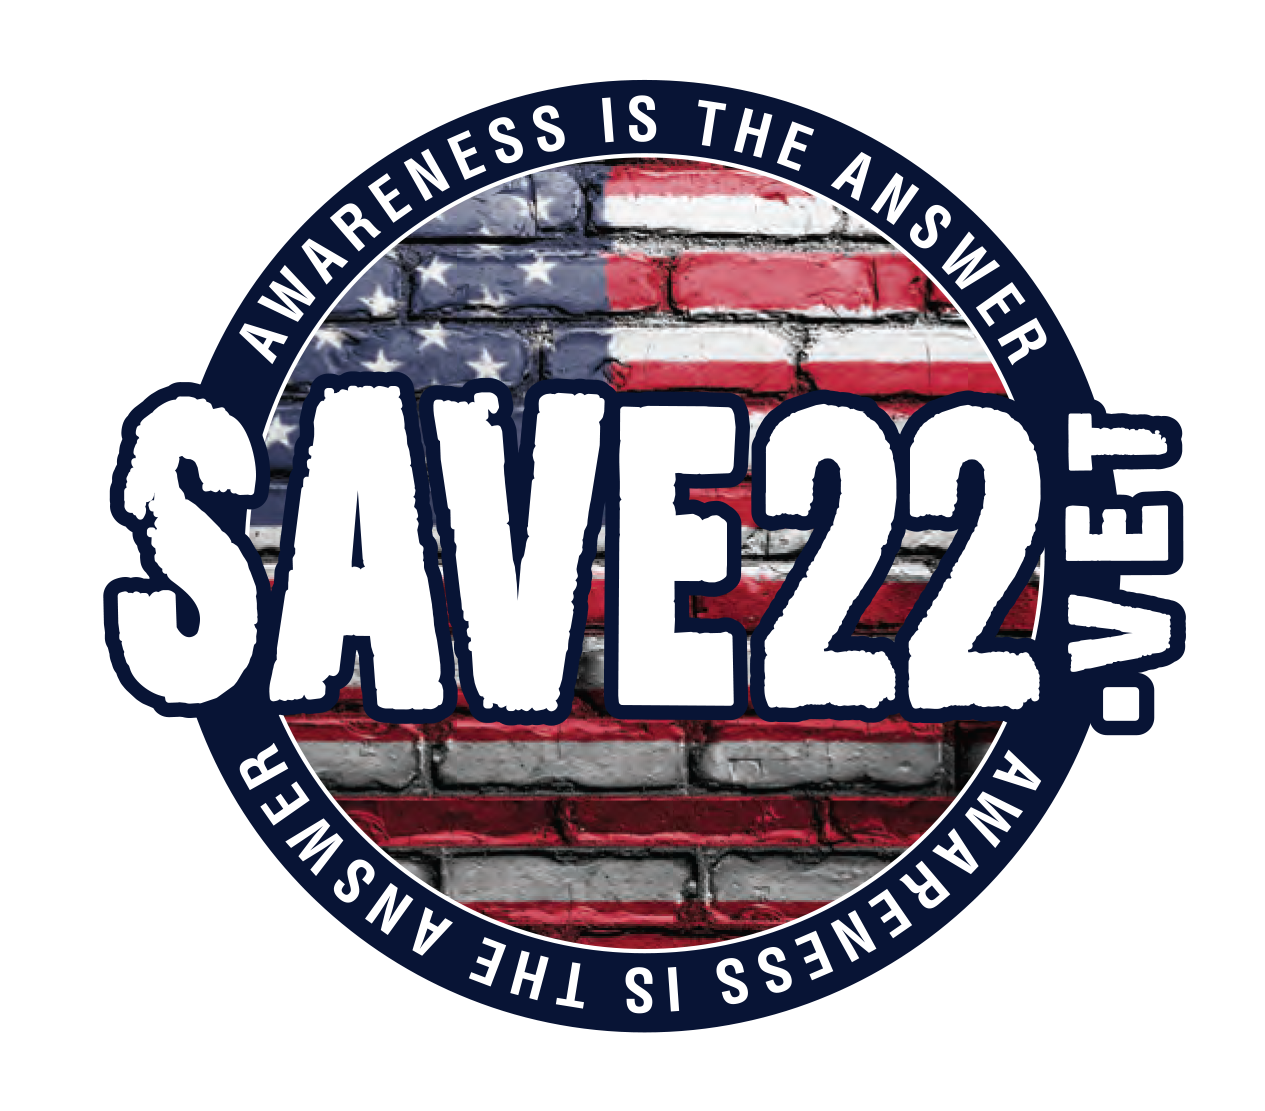 Lex Joon Racing Partners With SAVE22 Veterans Organization